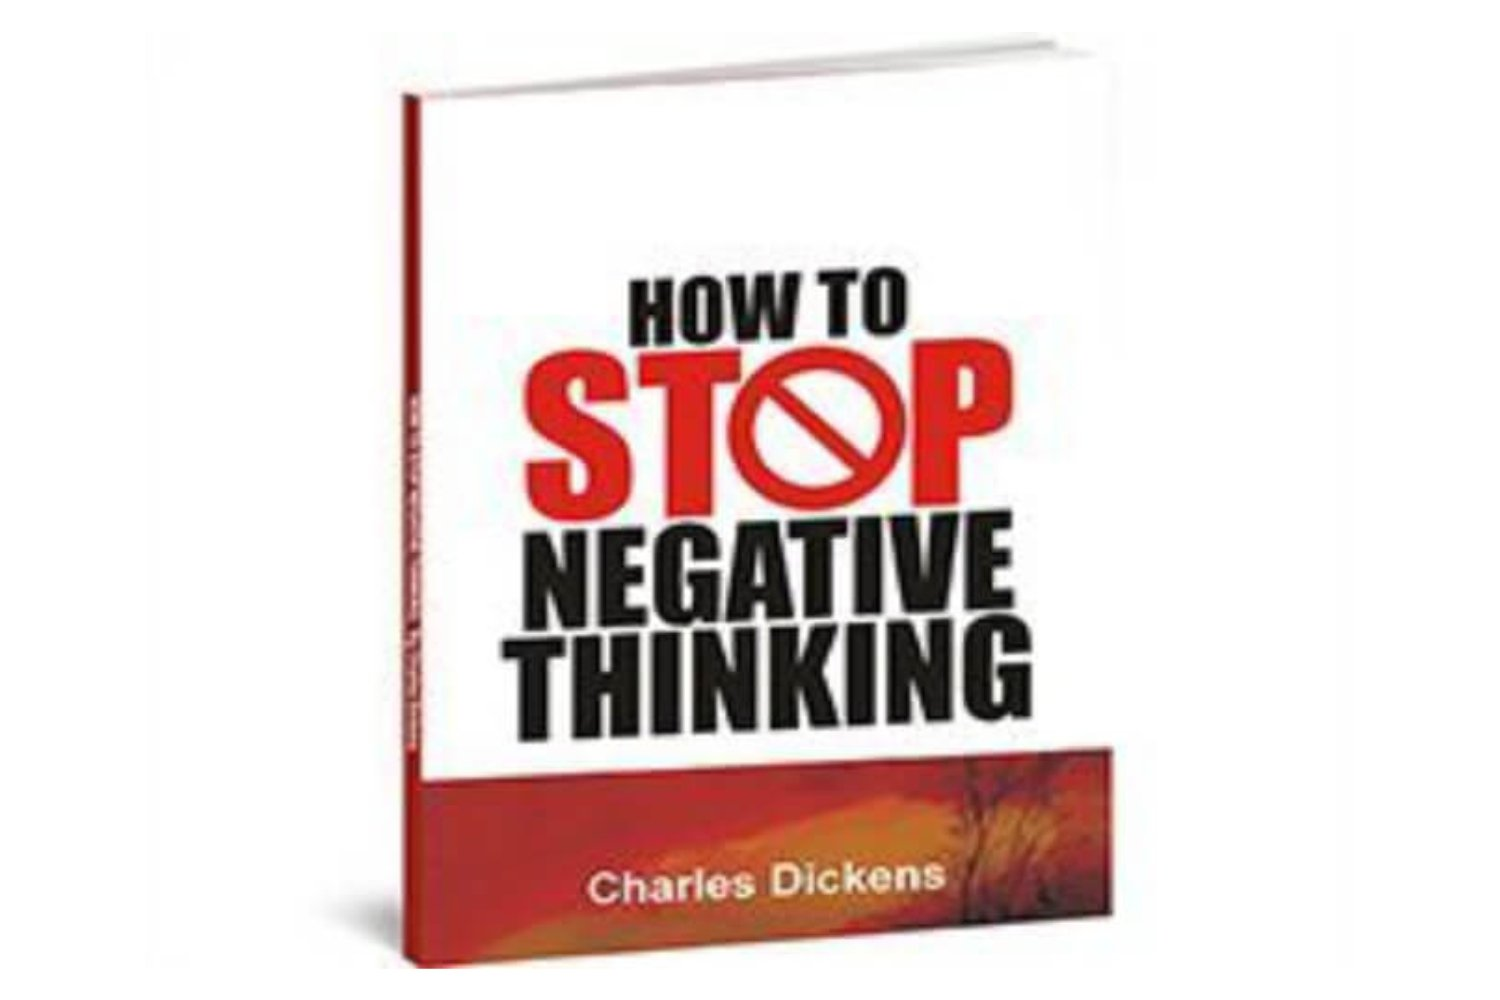 How-to-Stop-Negative-Thinking